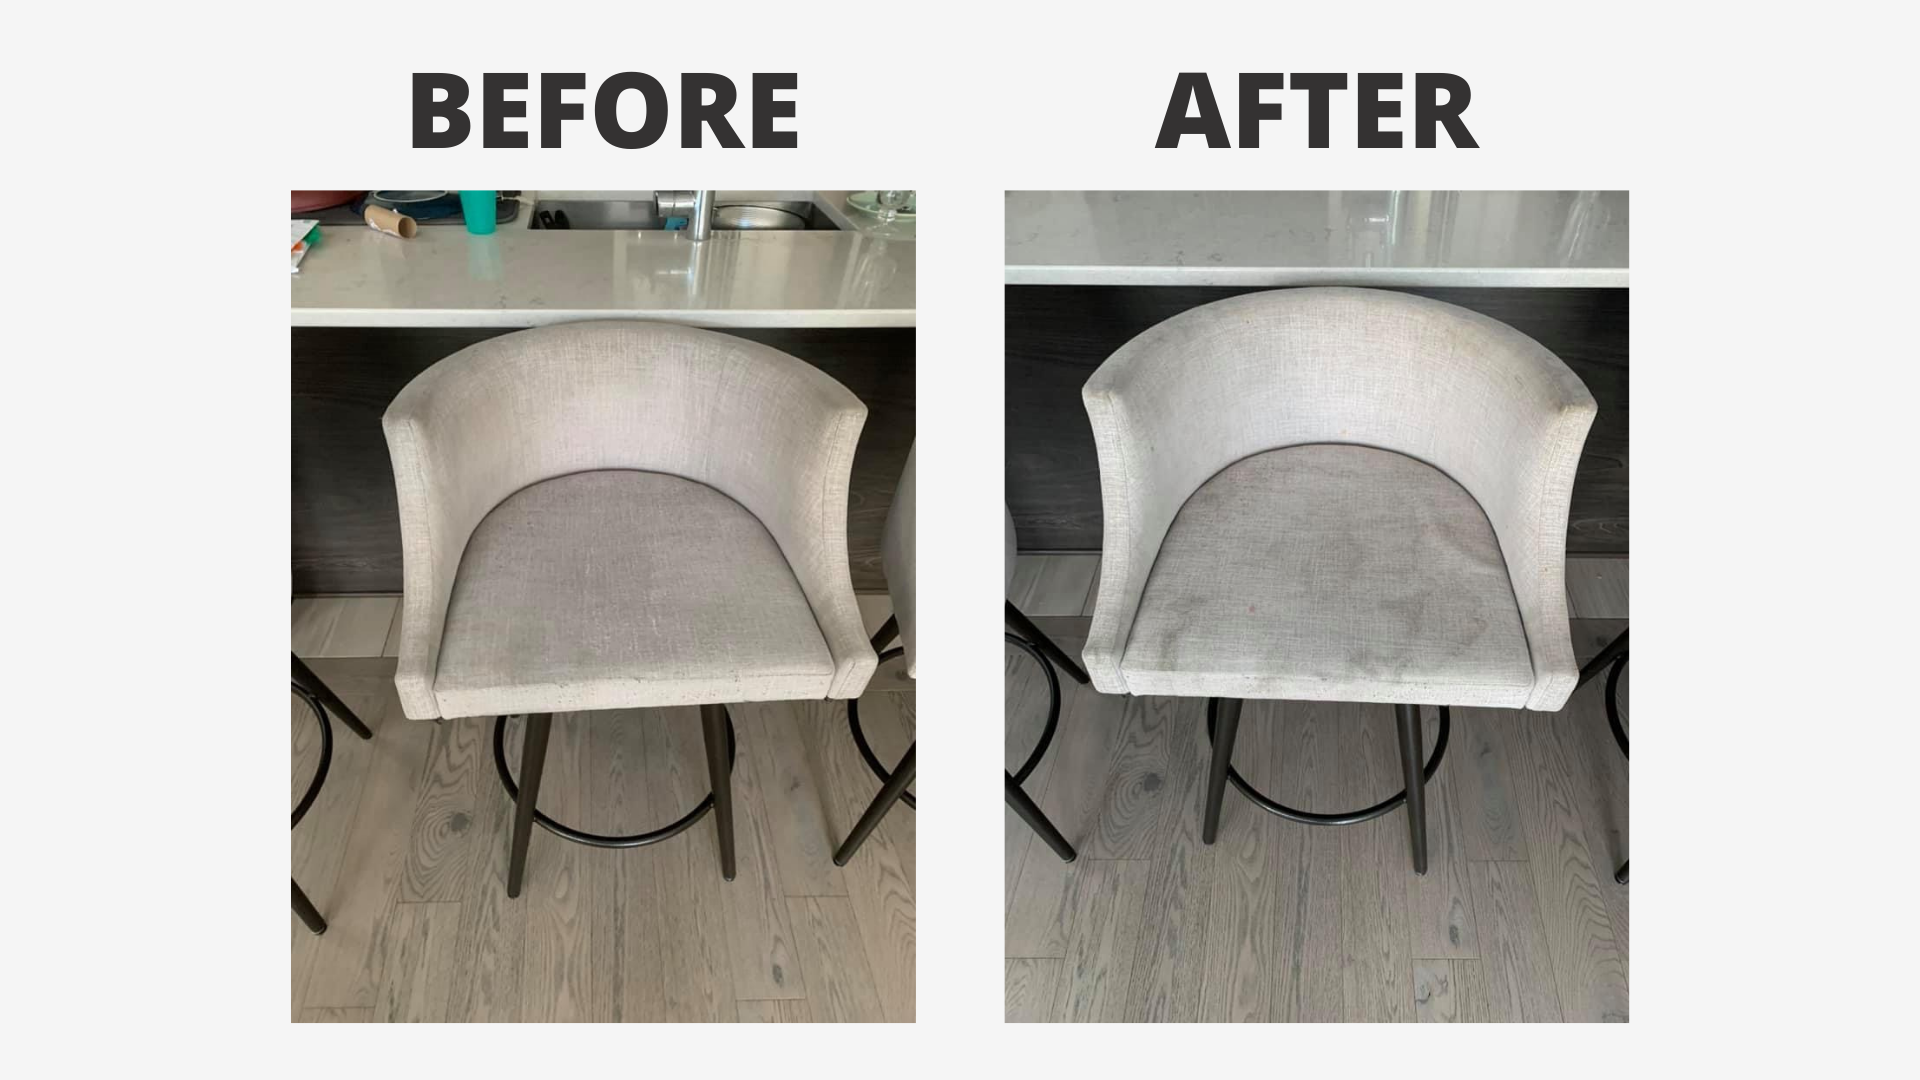 white chair before and after being cleaned